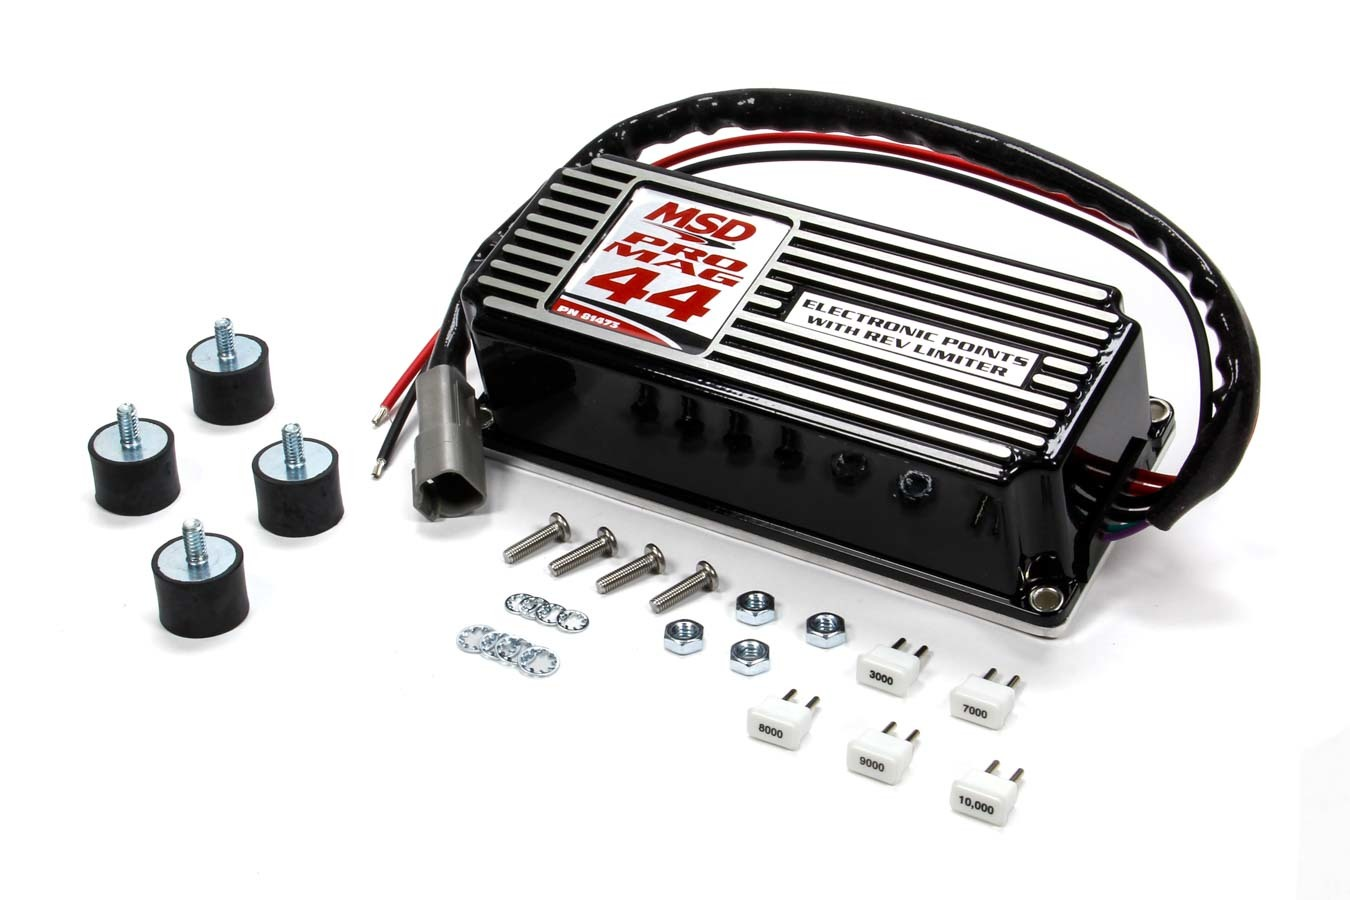 MSD Ignition 81473 Ignition Box, Pro Mag 44, Electronic Points Box, Rec Limiter, MSD Pro Mag 44, Black, Each